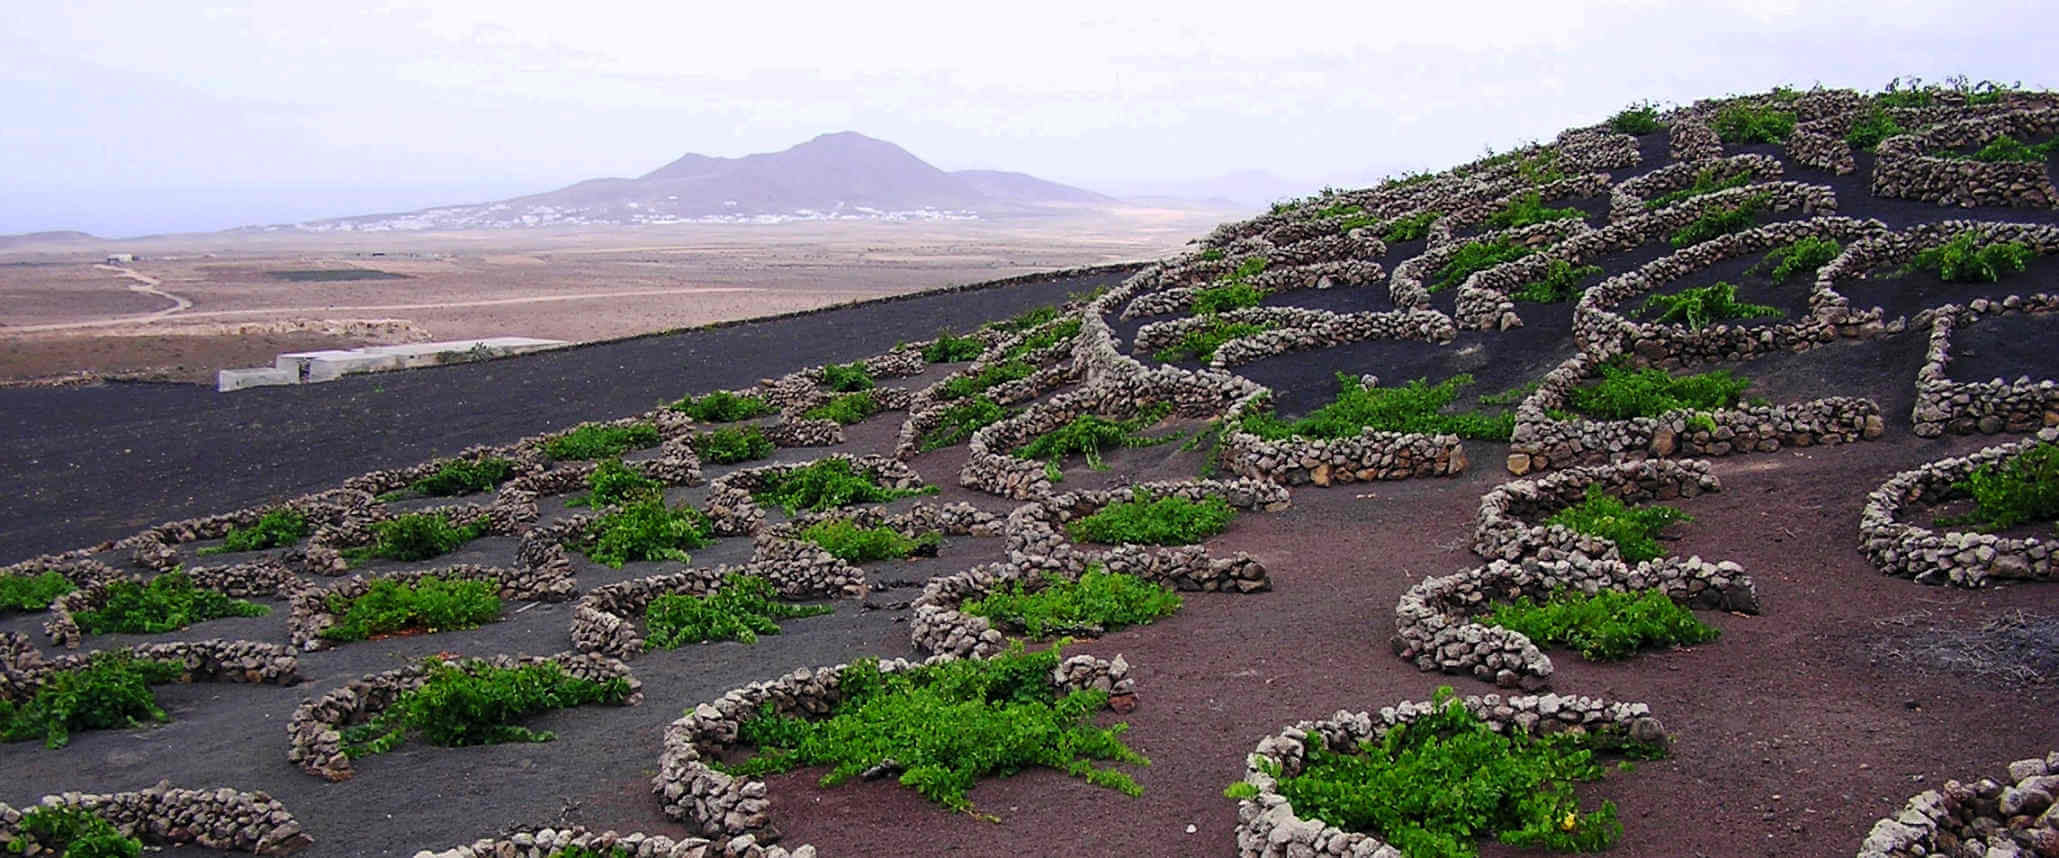 Tour to La Geria in Lanzarote